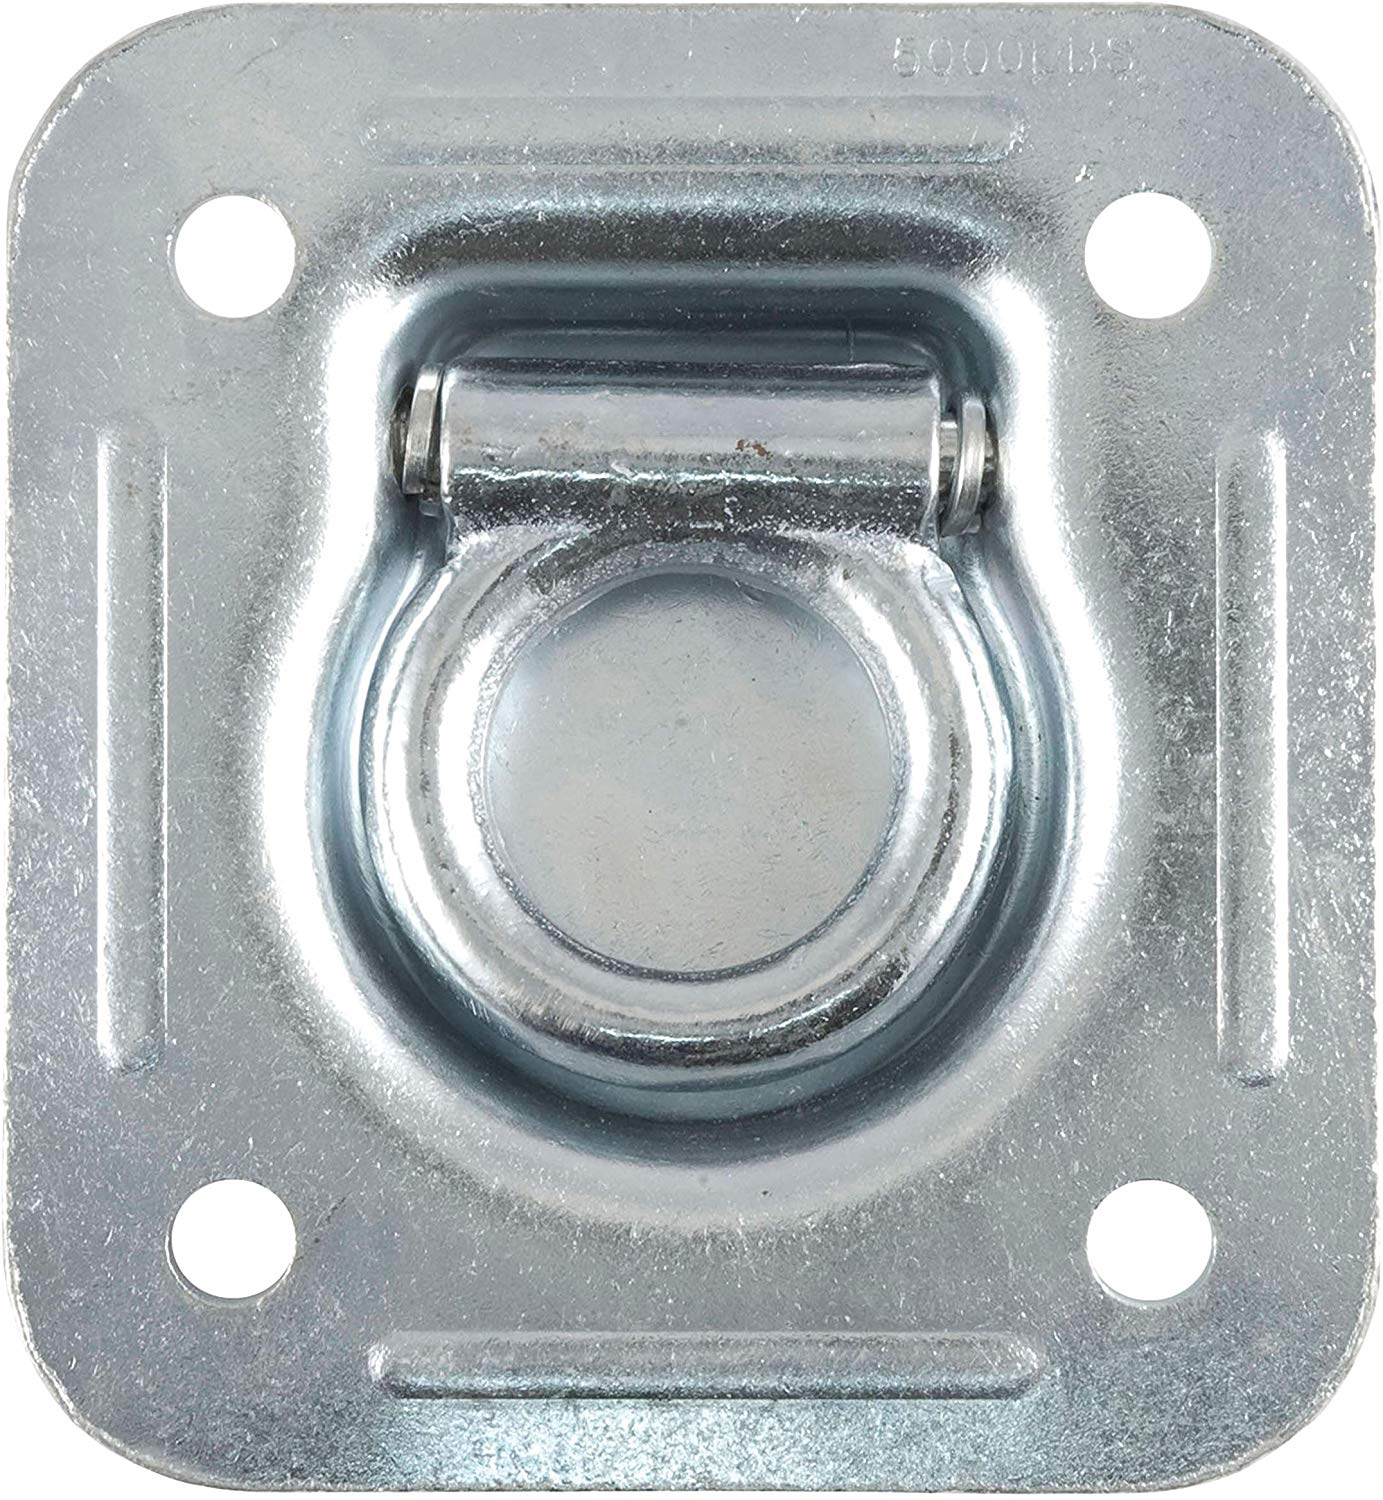 D-Ring Recessed 5K LB for Pace Trailer